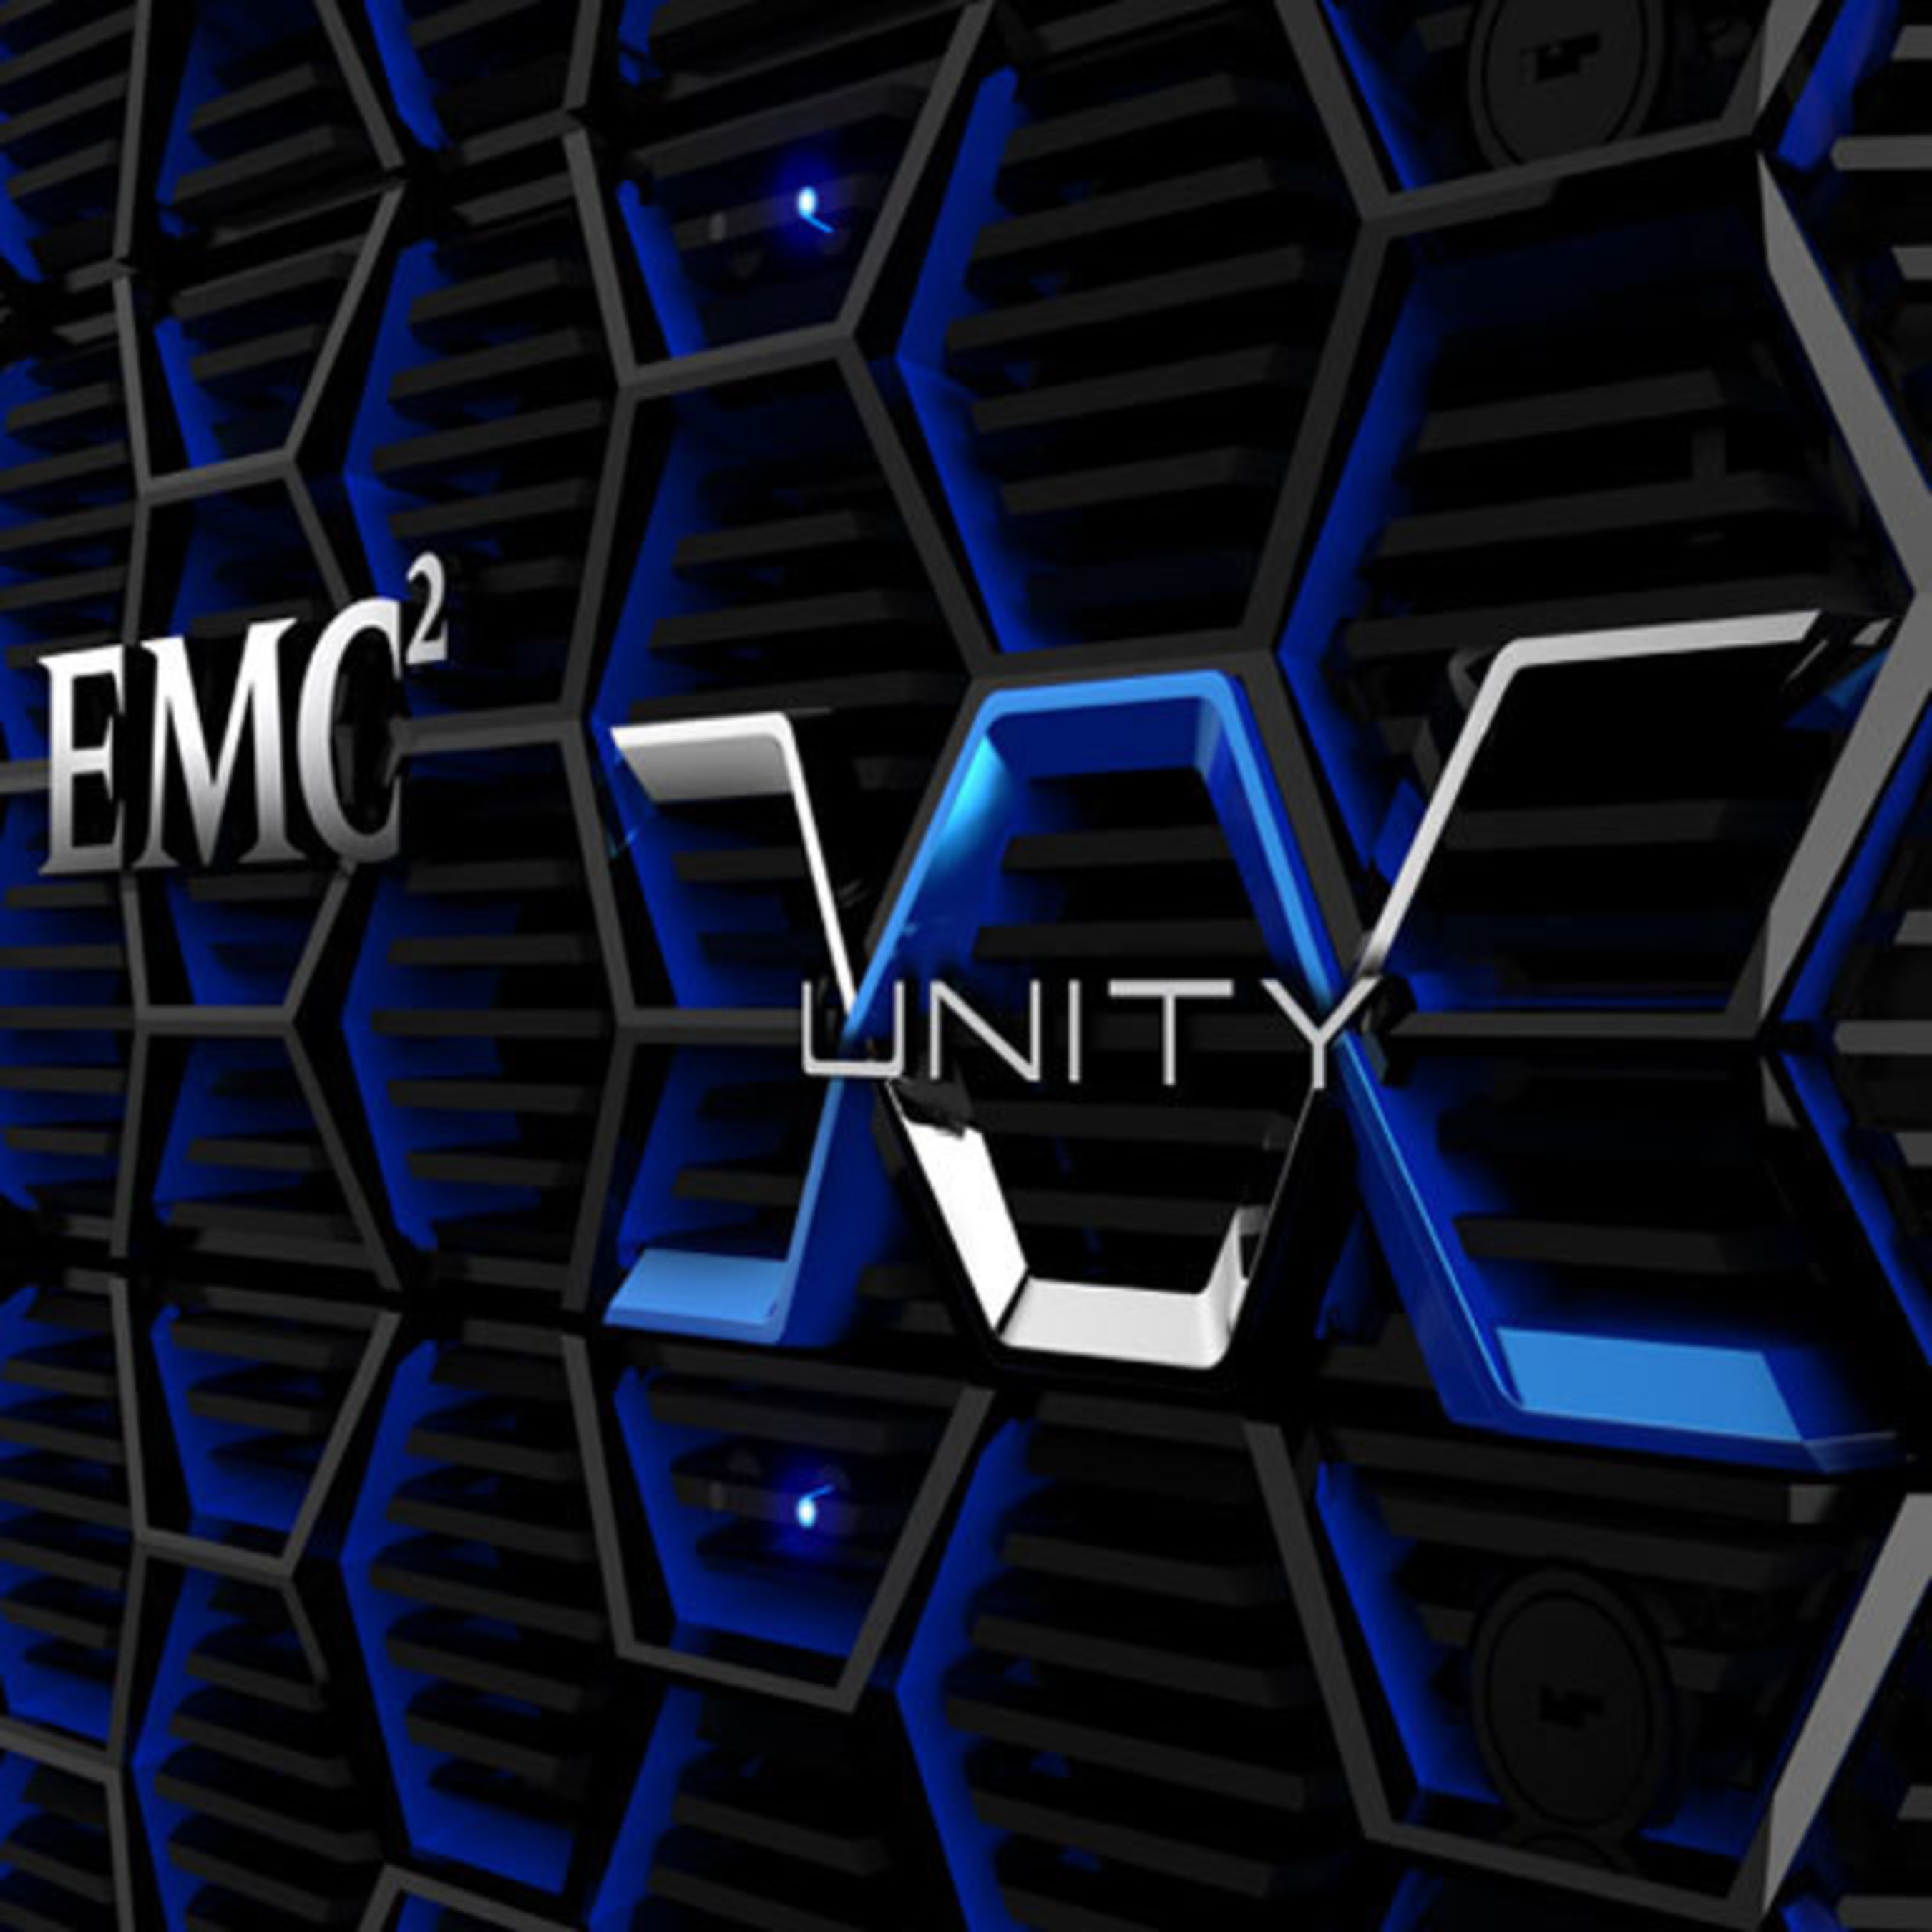 EMC Unity Breaks New Ground for All-Flash Storage Simplicity and Affordability